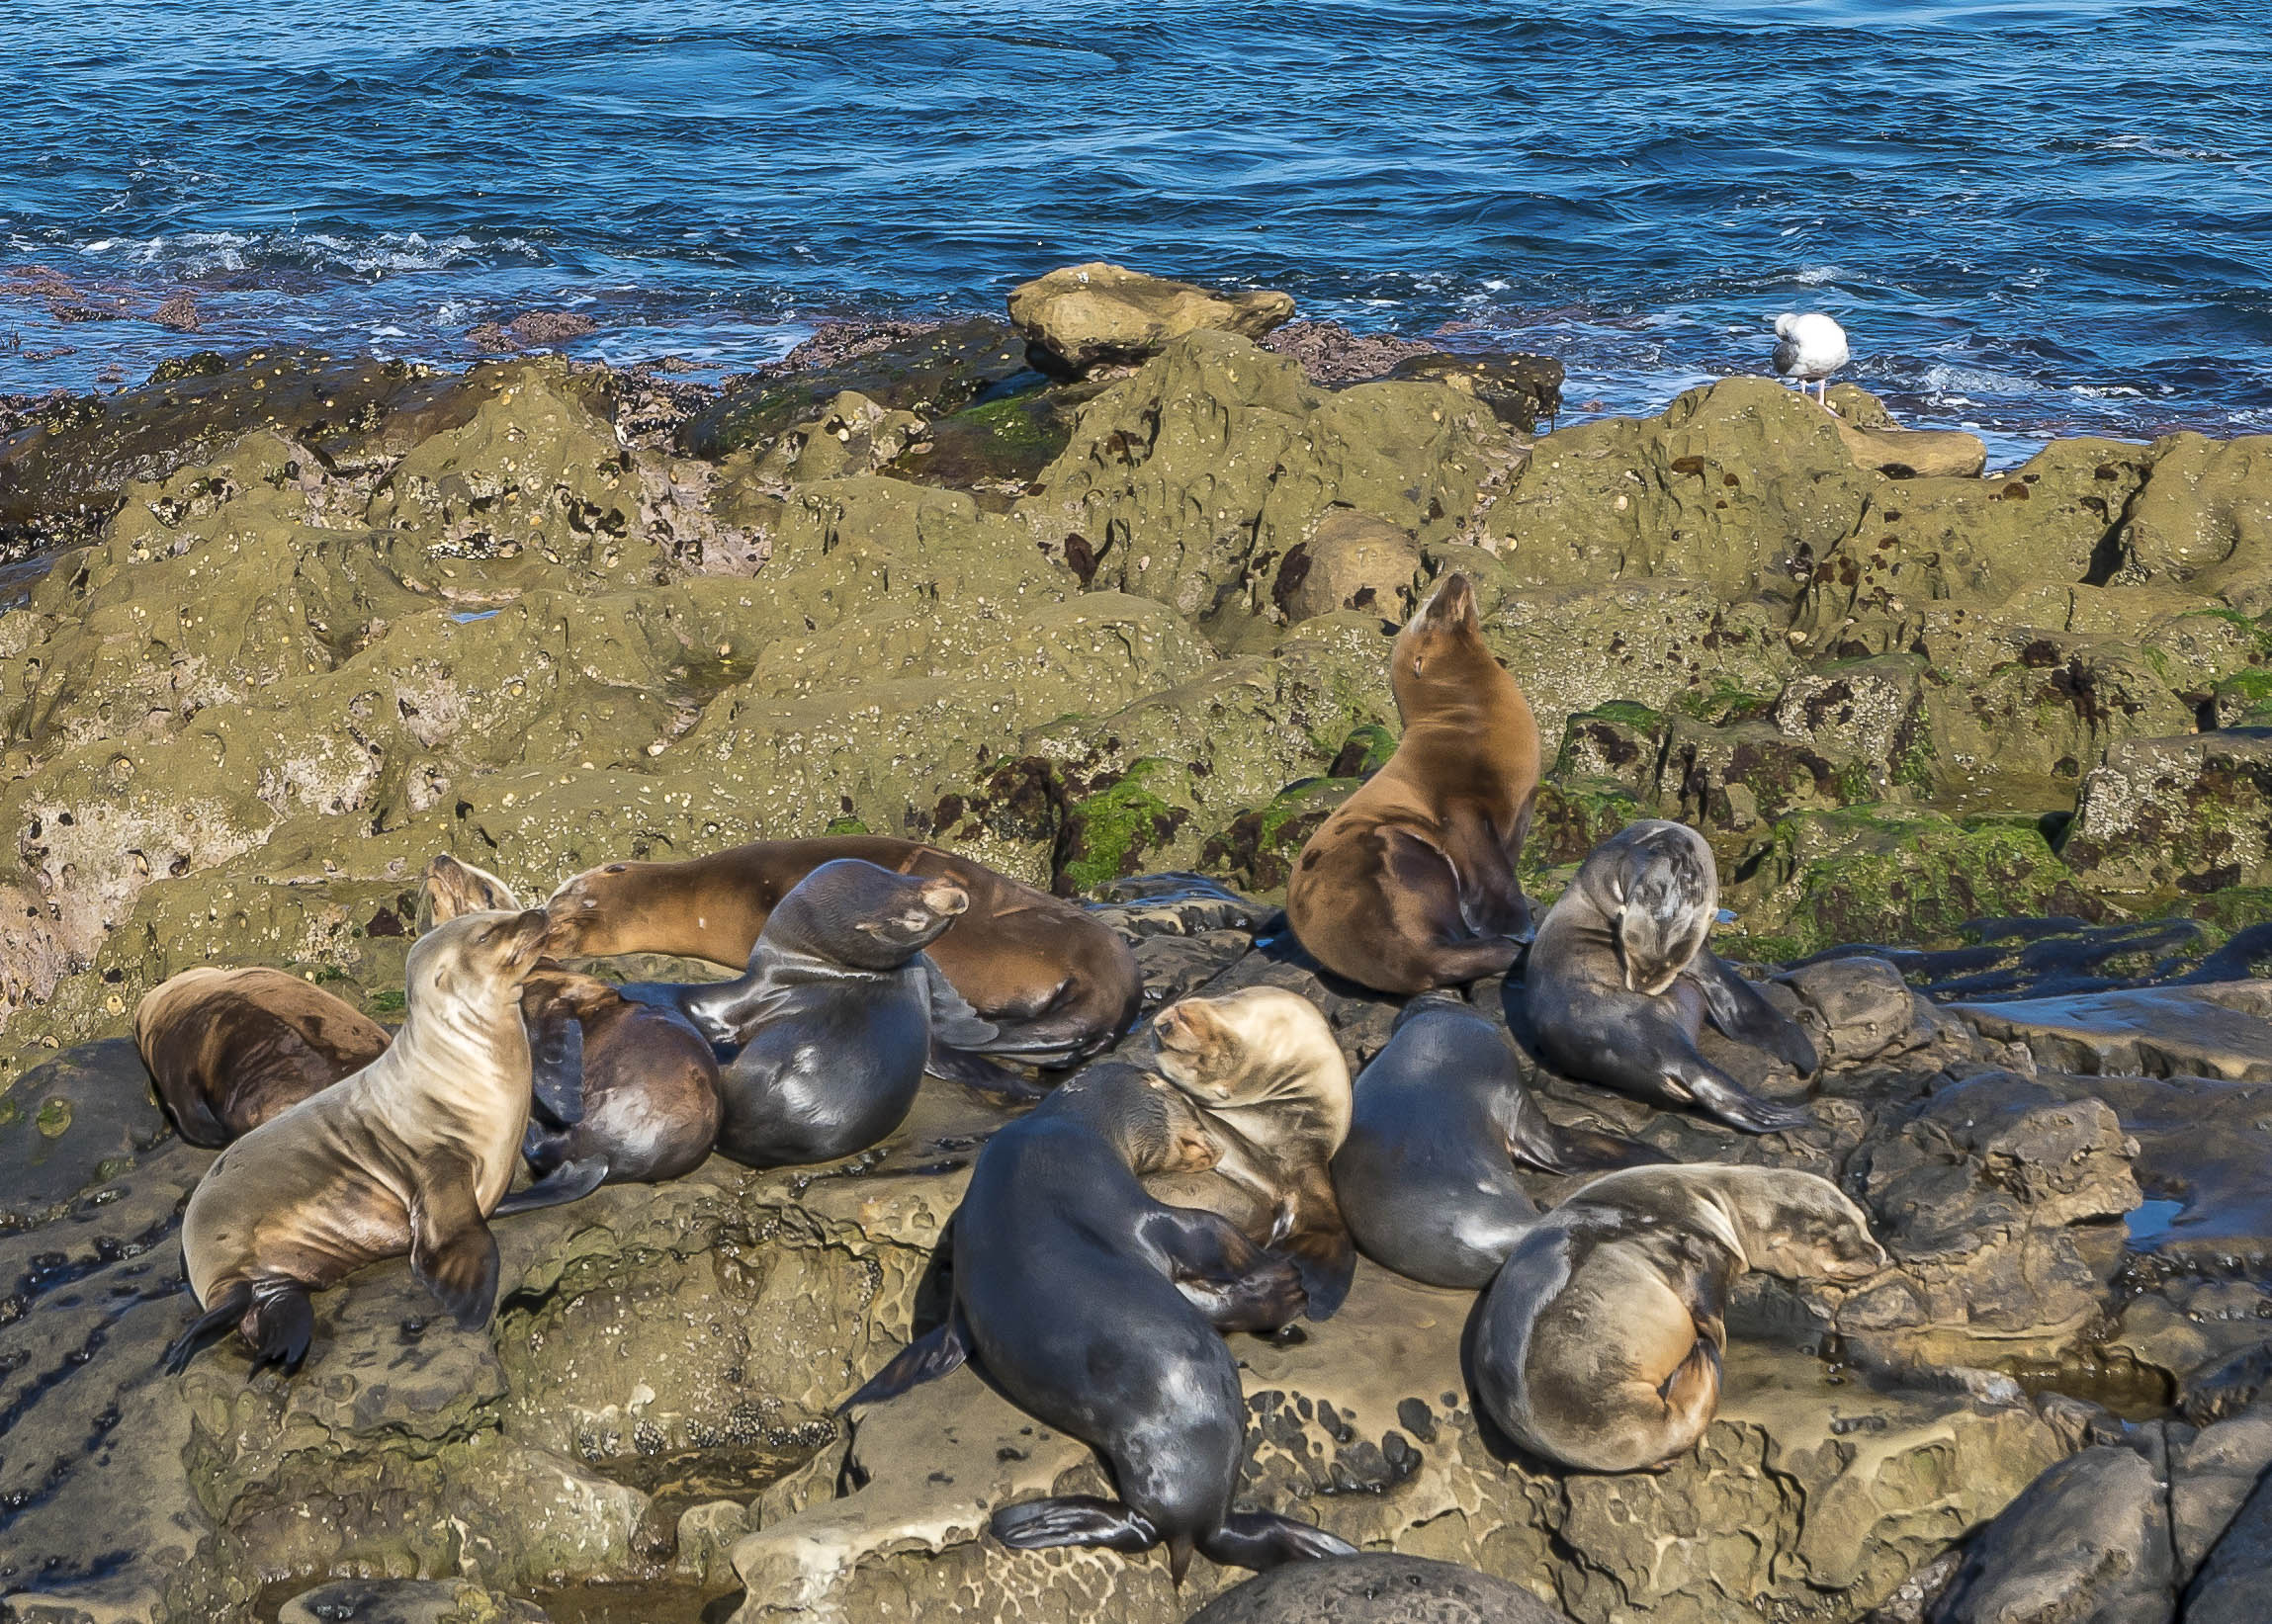 Sea lions huddle up on the rocks at La Jolla Cove, one of my favorite animal encounters in San Diego.